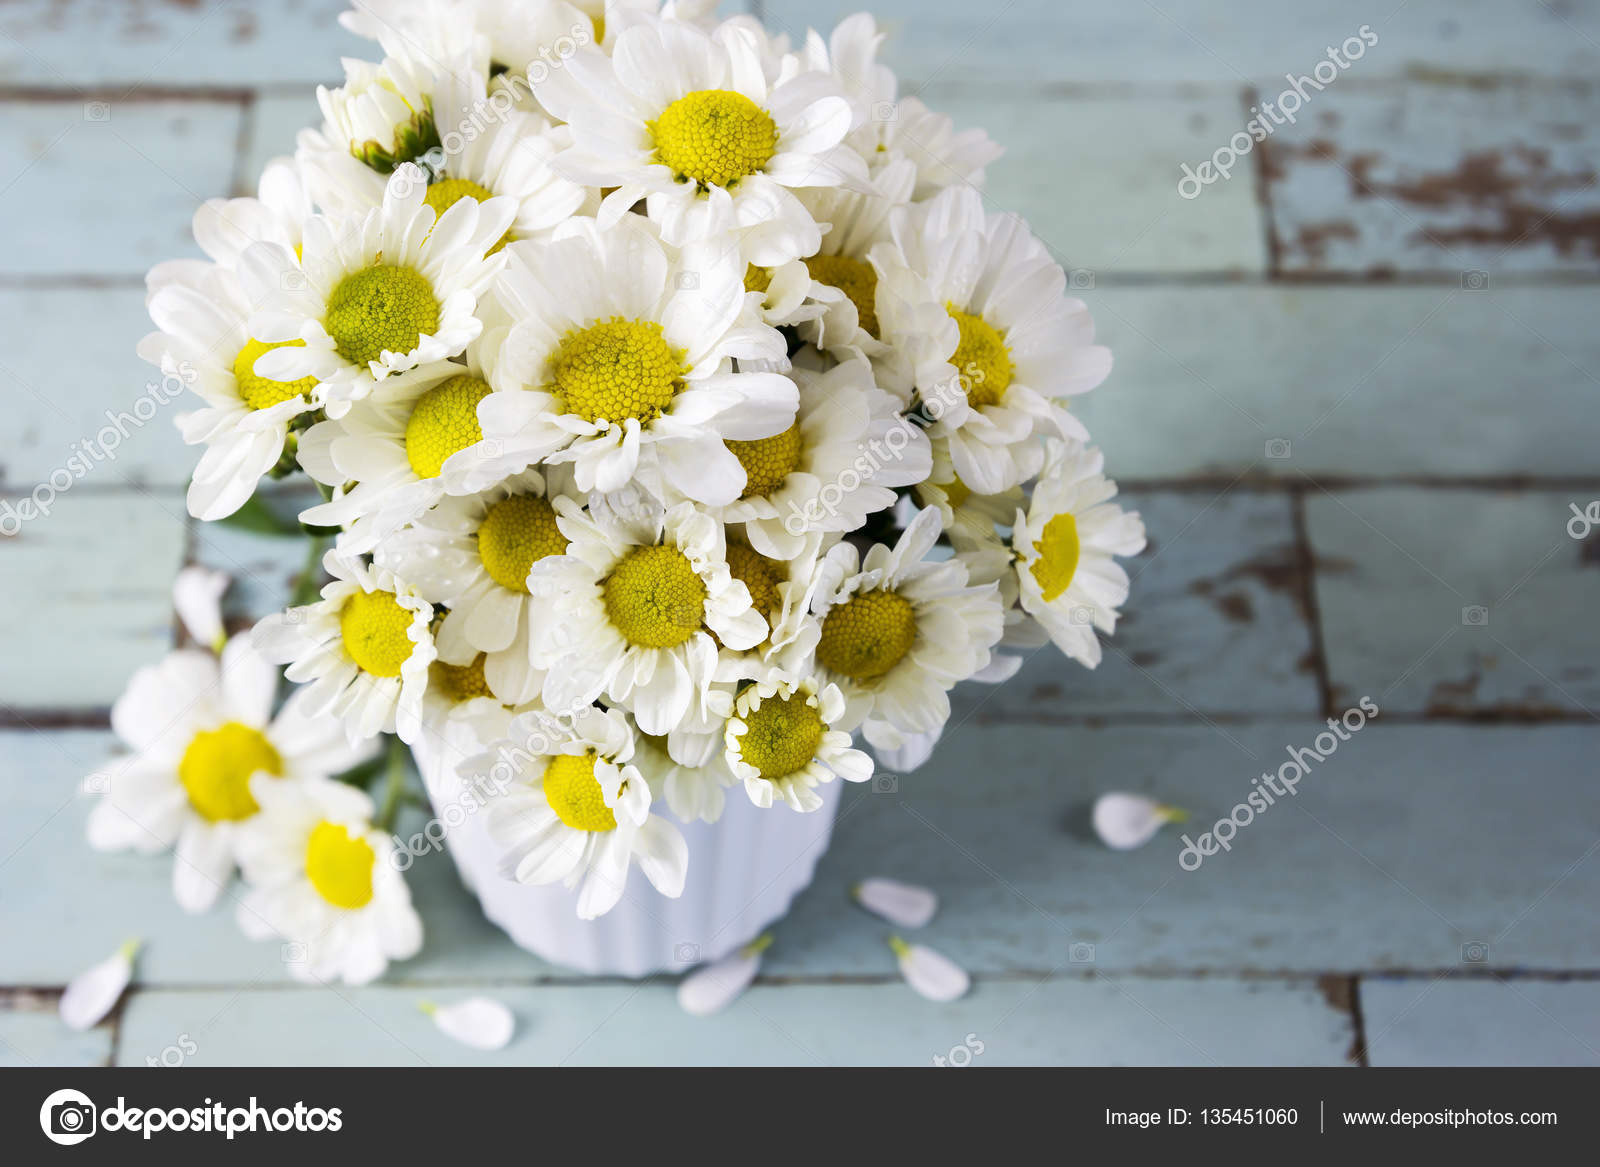 Fresh Daisy Flowers In White Cup On Wooden Table Stock Photo